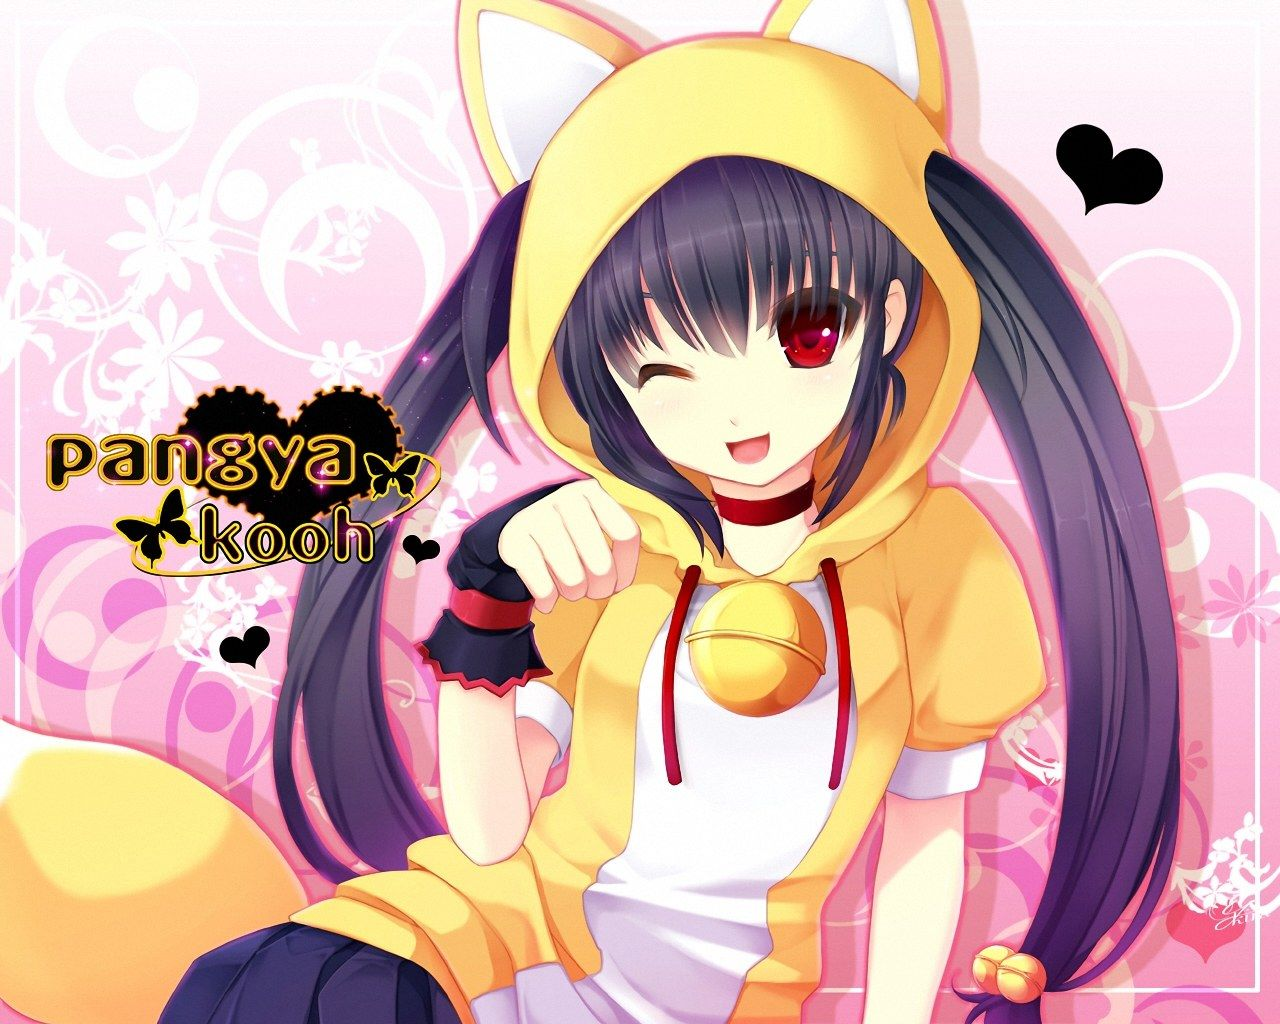 1280x1024 anime super fan images neko girl HD wallpaper and background photos ...